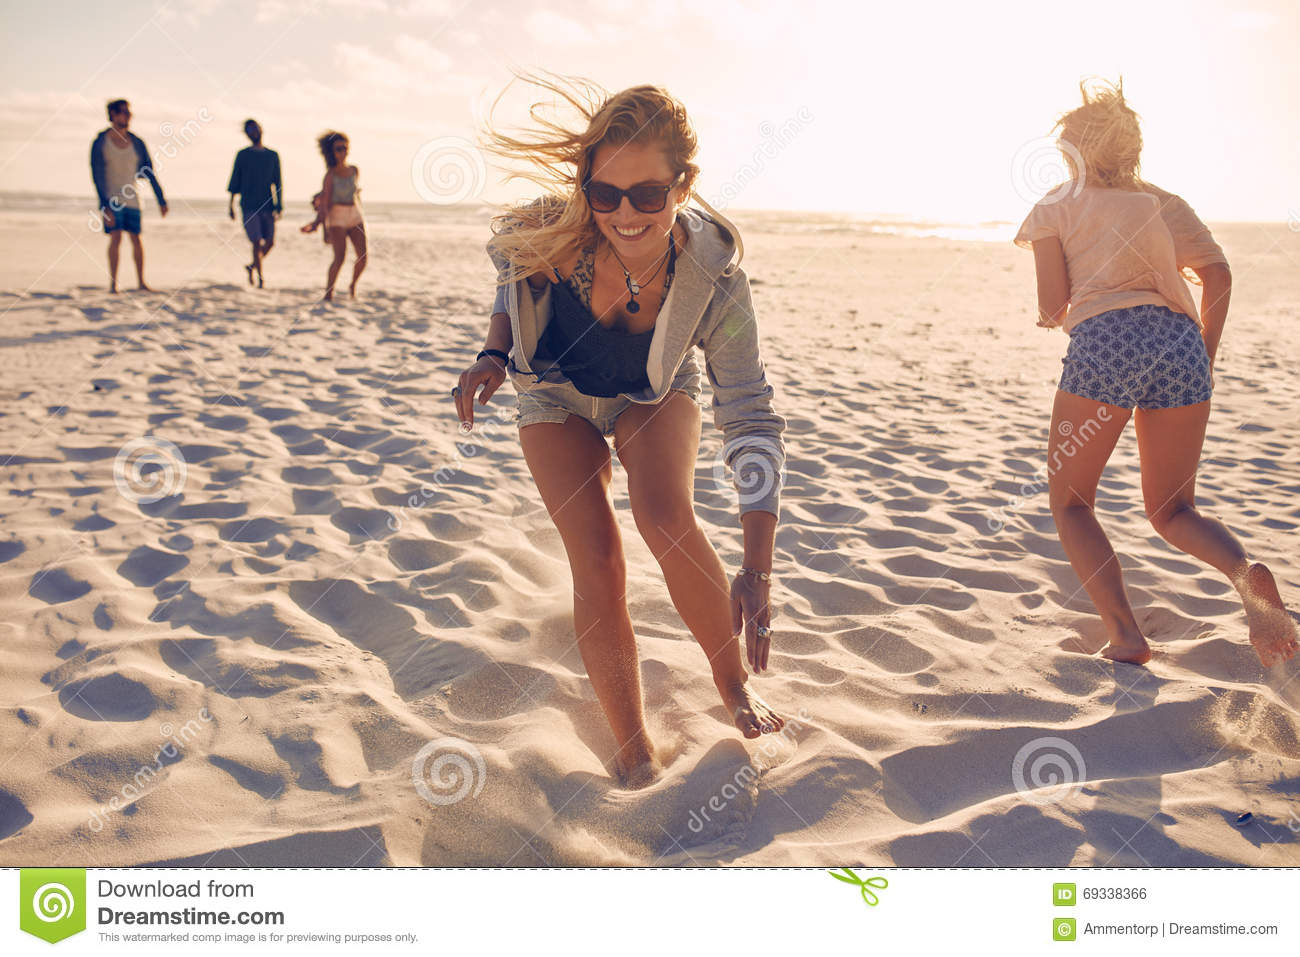 adults games Group beach for